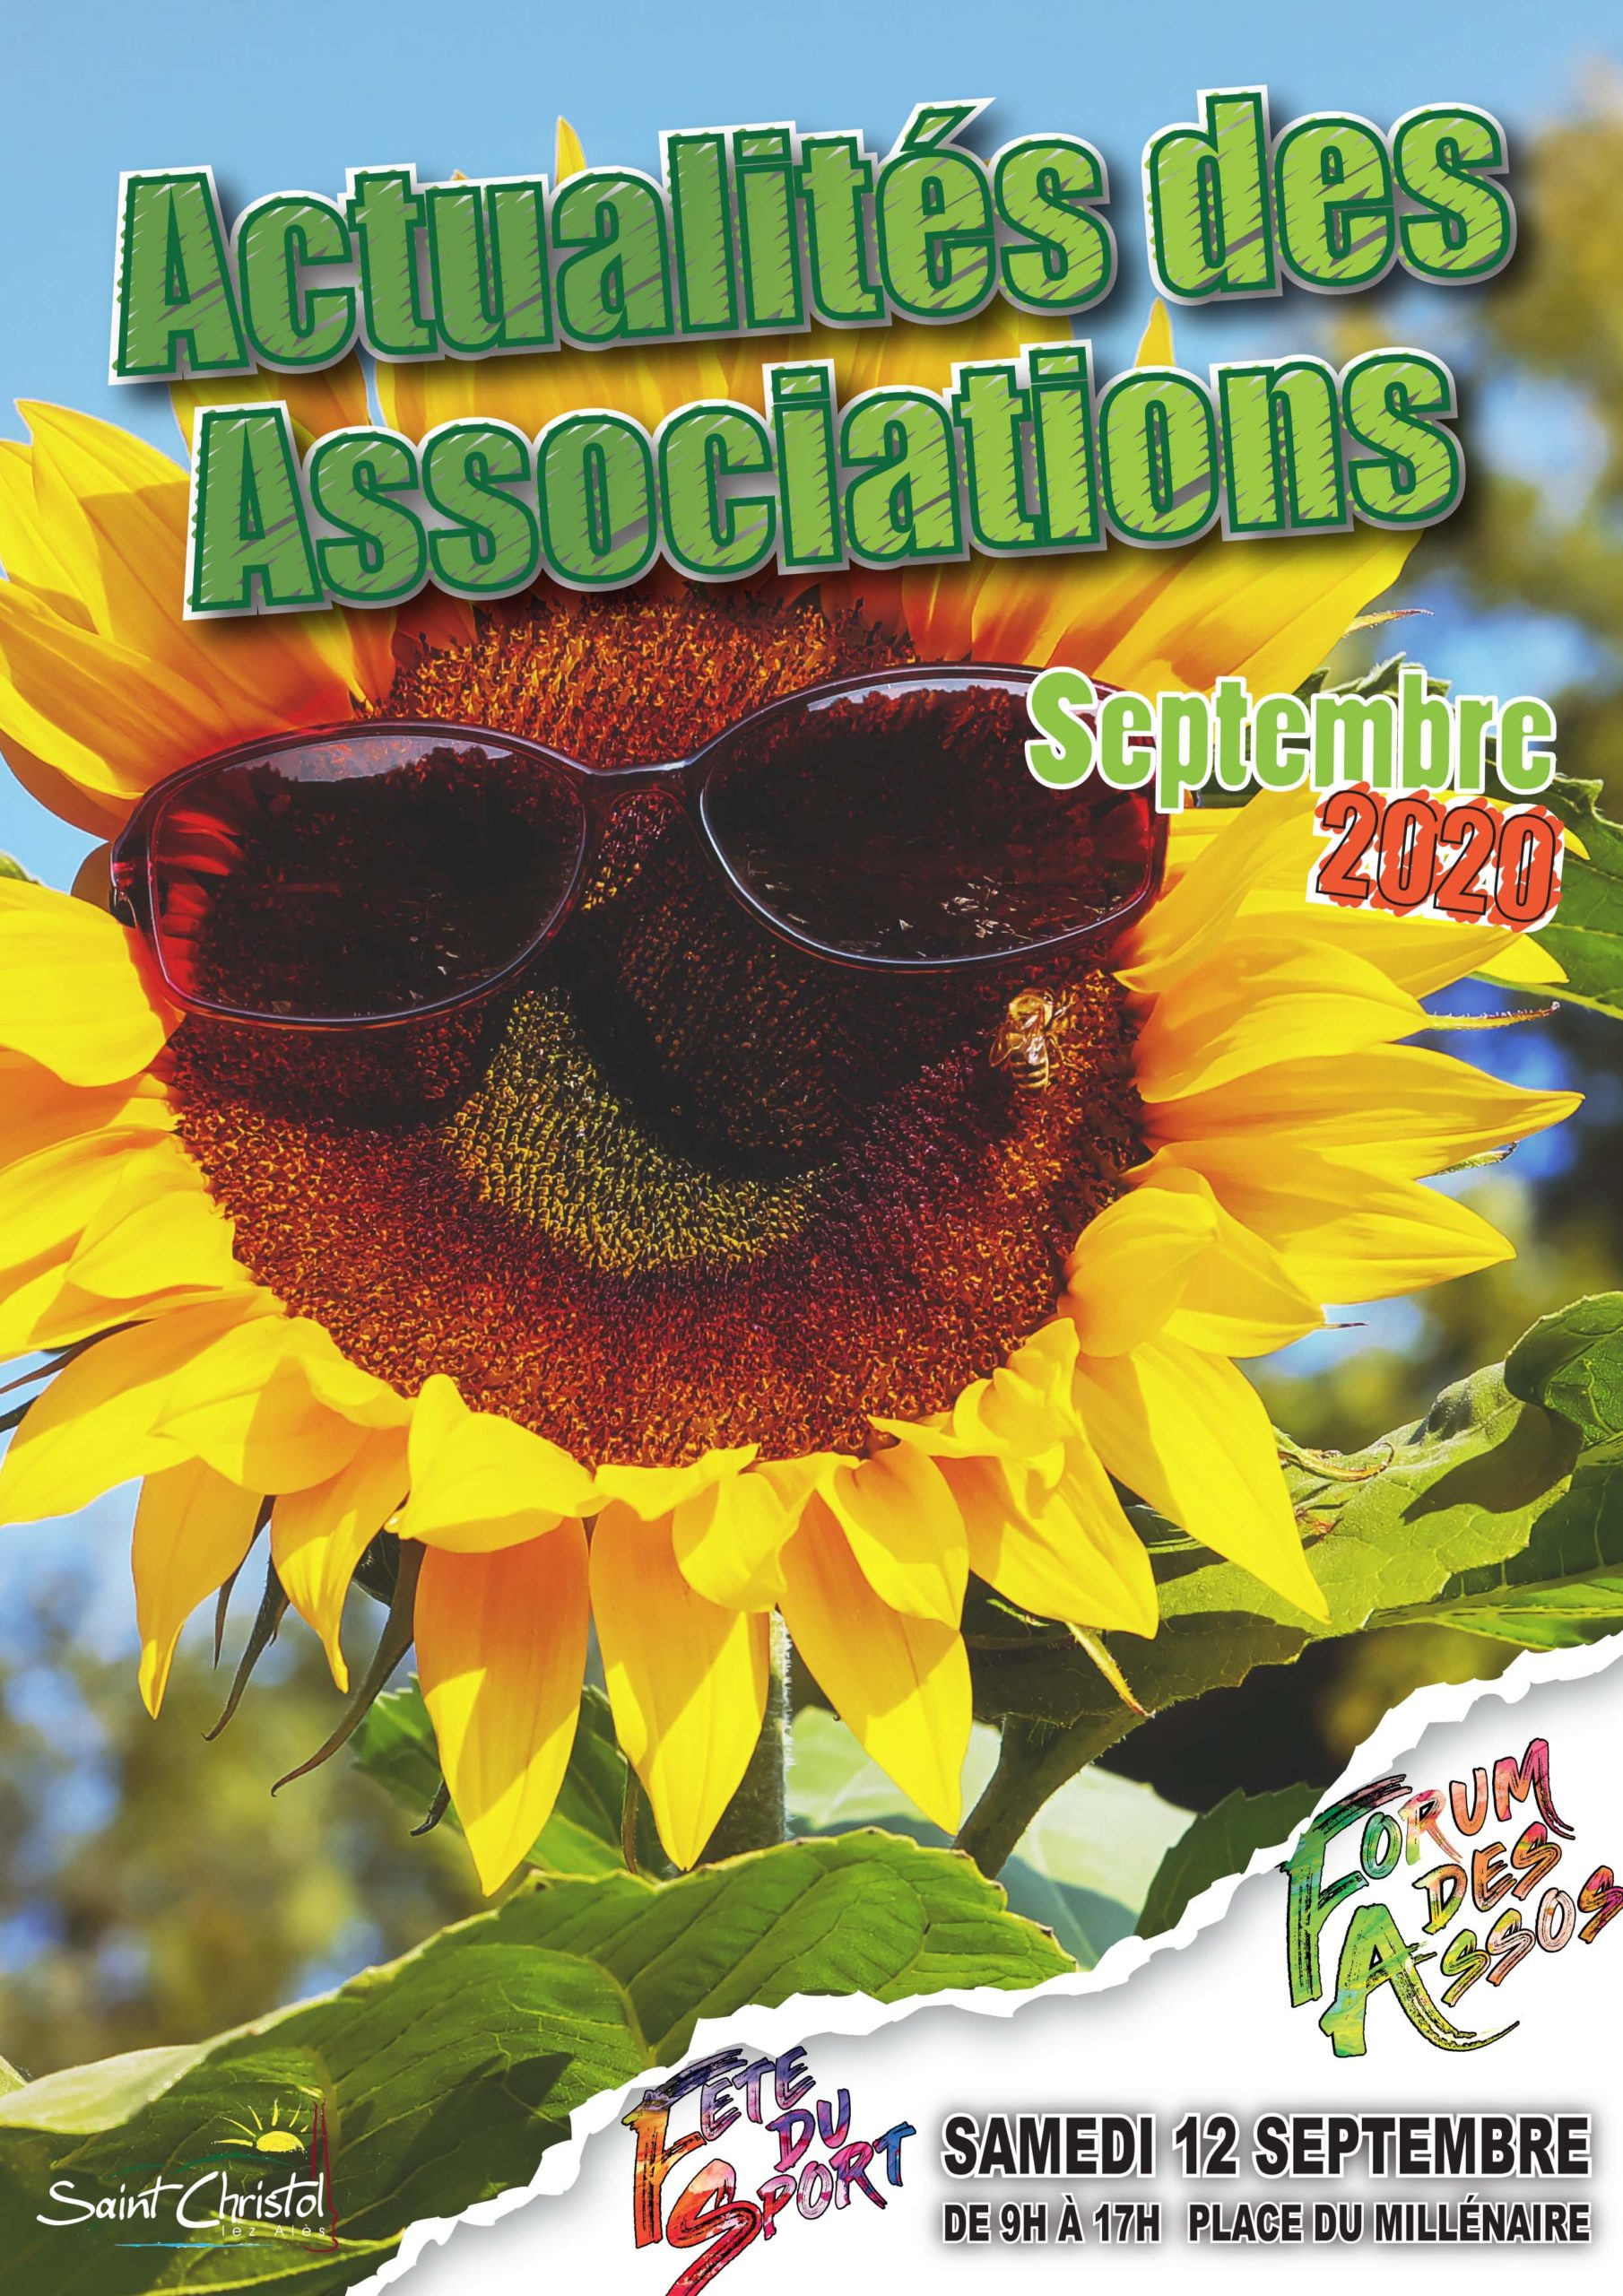 Journal des associations